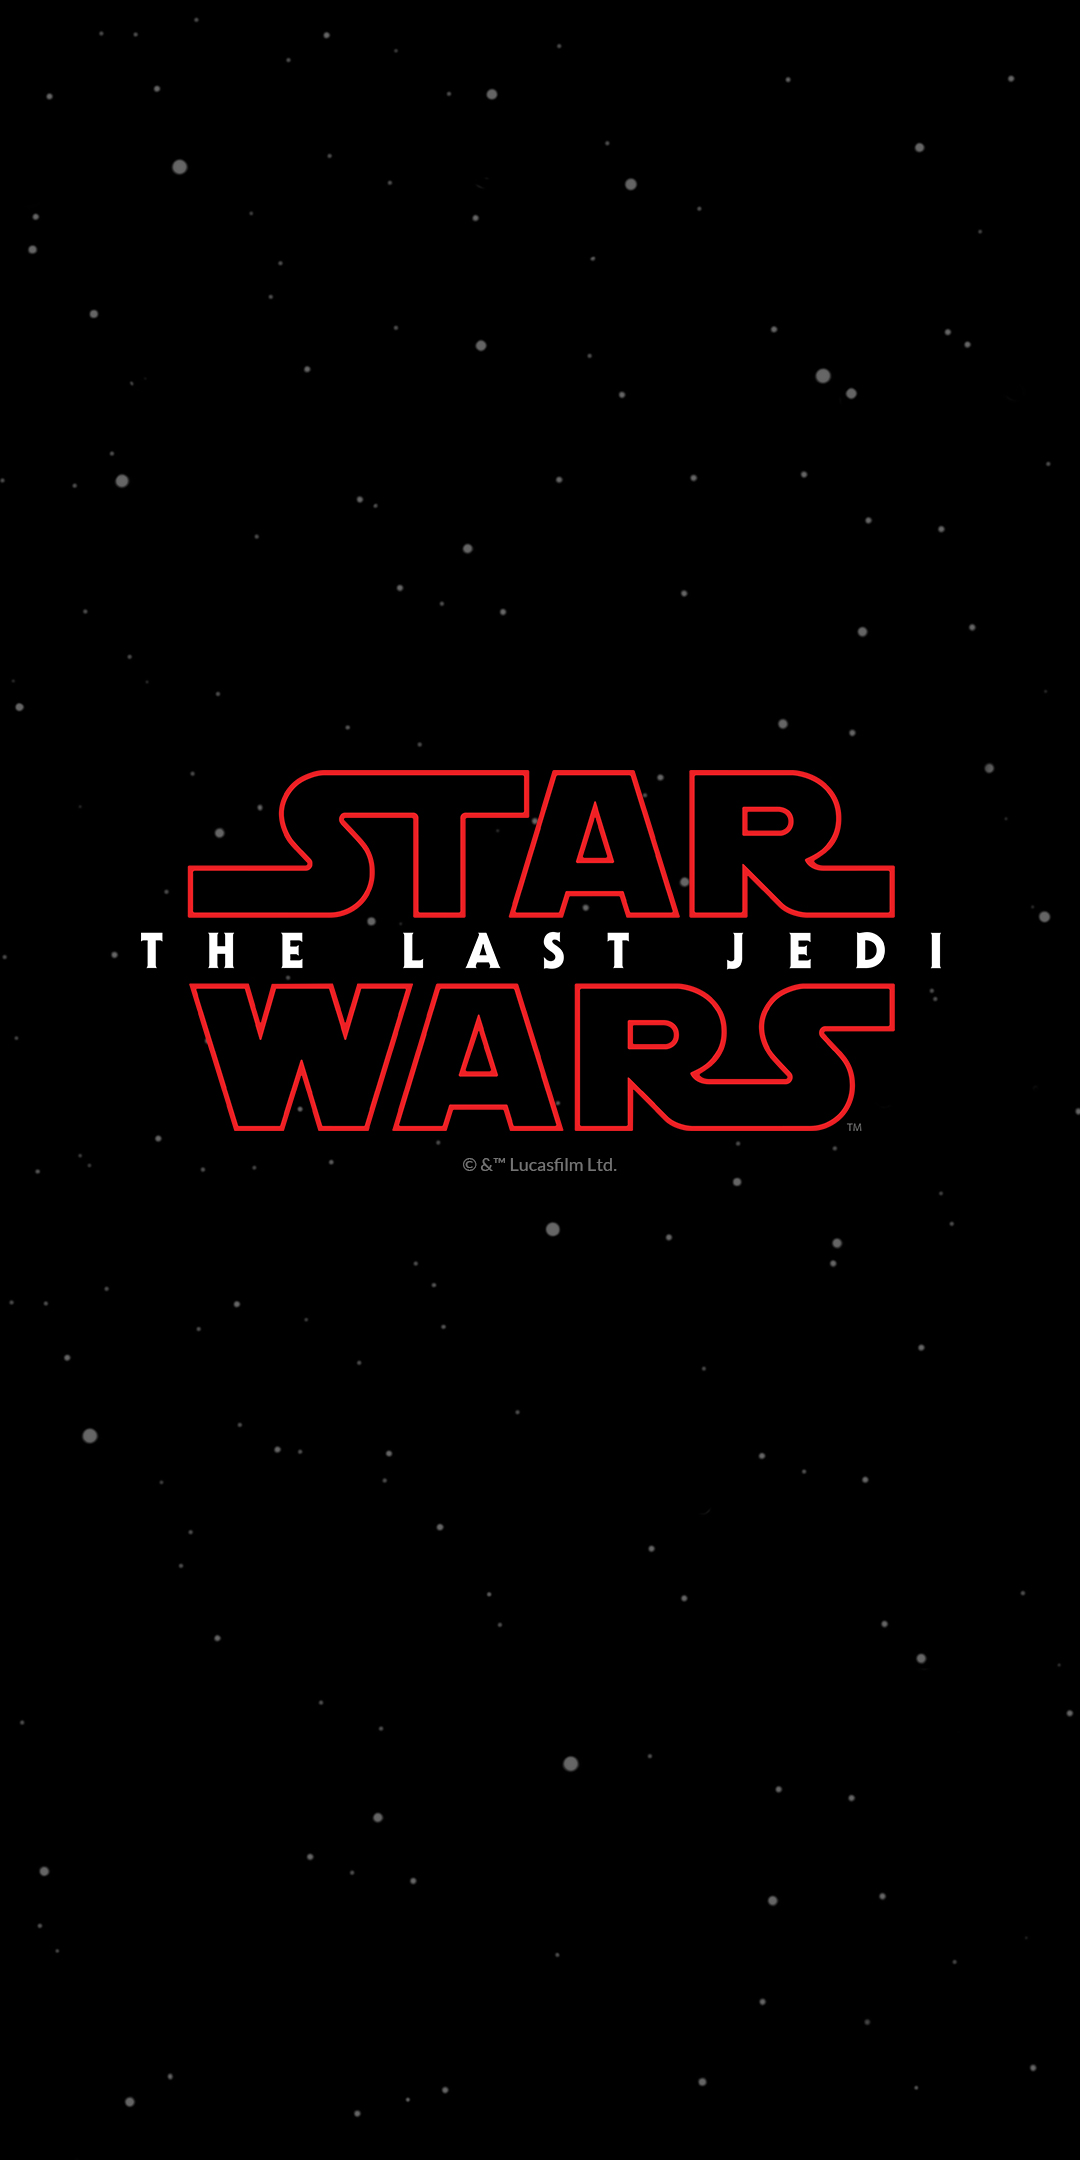 Oneplus 5t Star Wars The Last Jedi Wallpapers Download